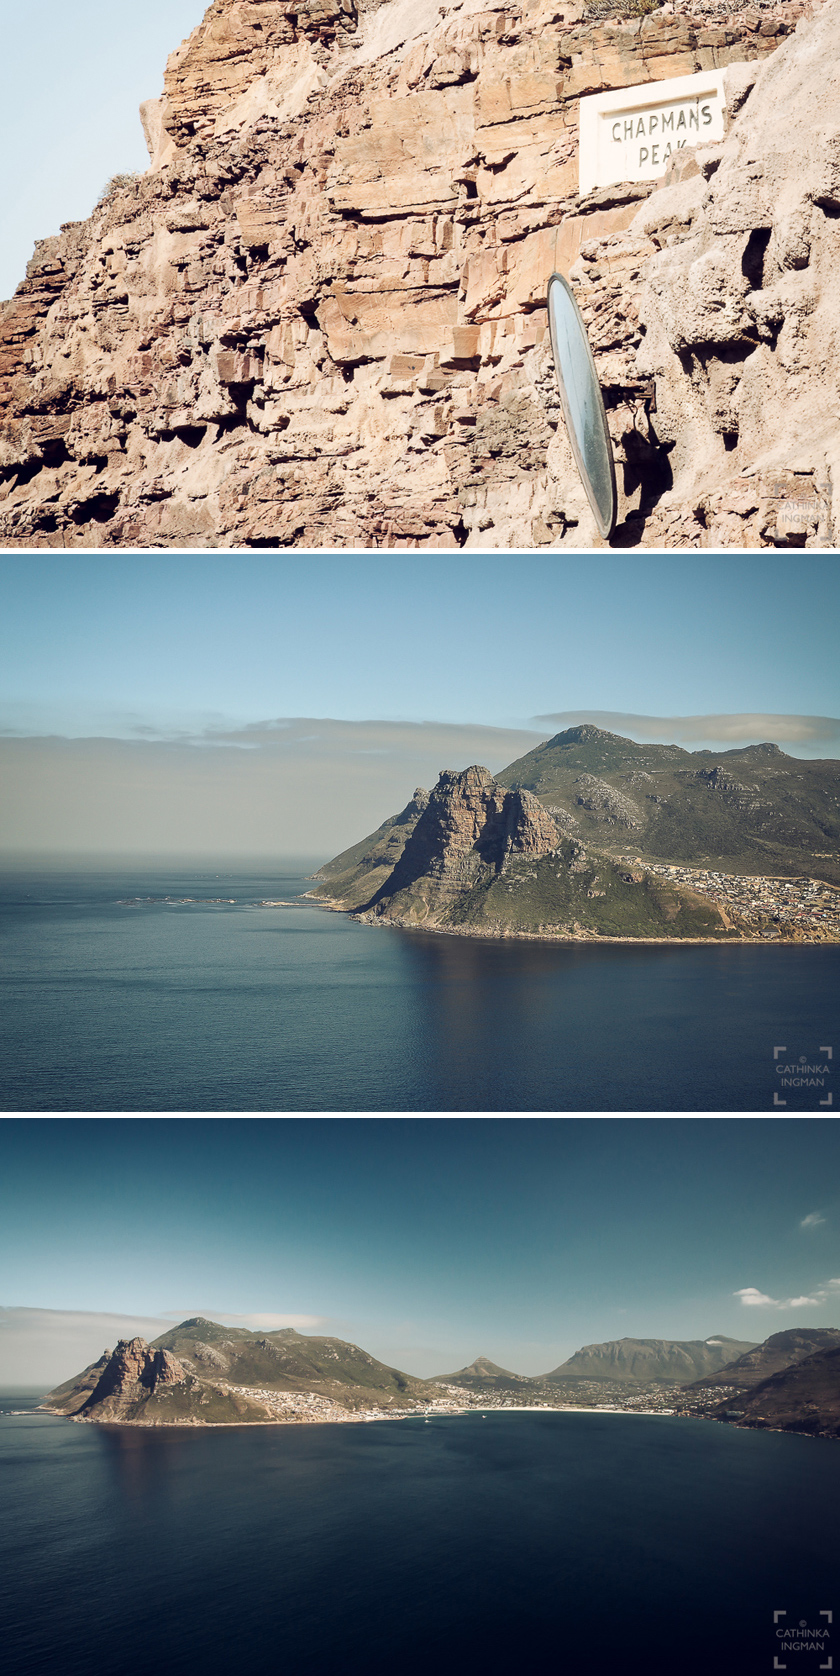 Godahoppsudden. Chapmans Peak, Cape of Good Hope